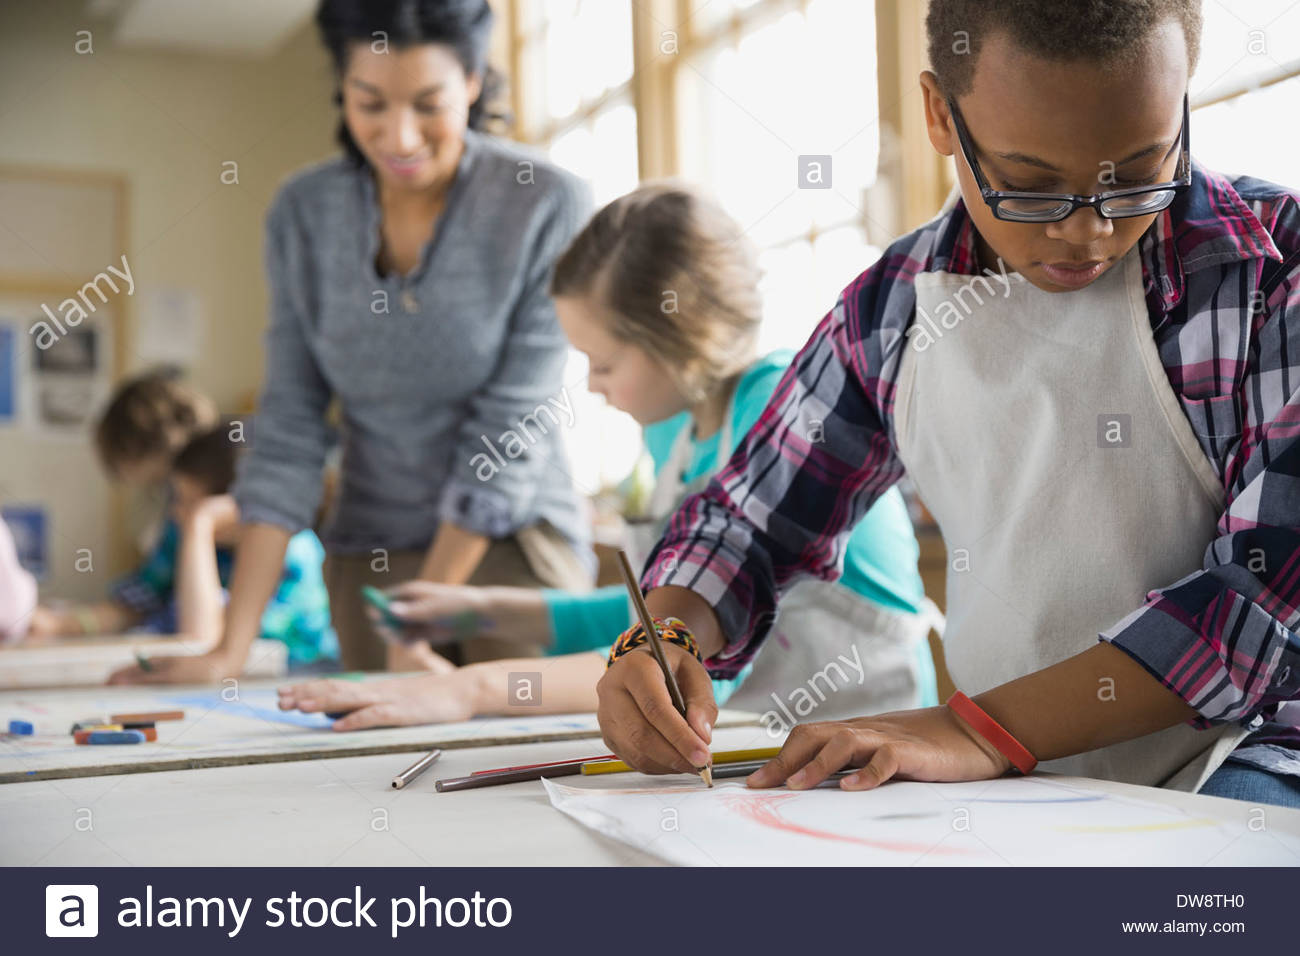 Boy drawing in art class Photo Stock